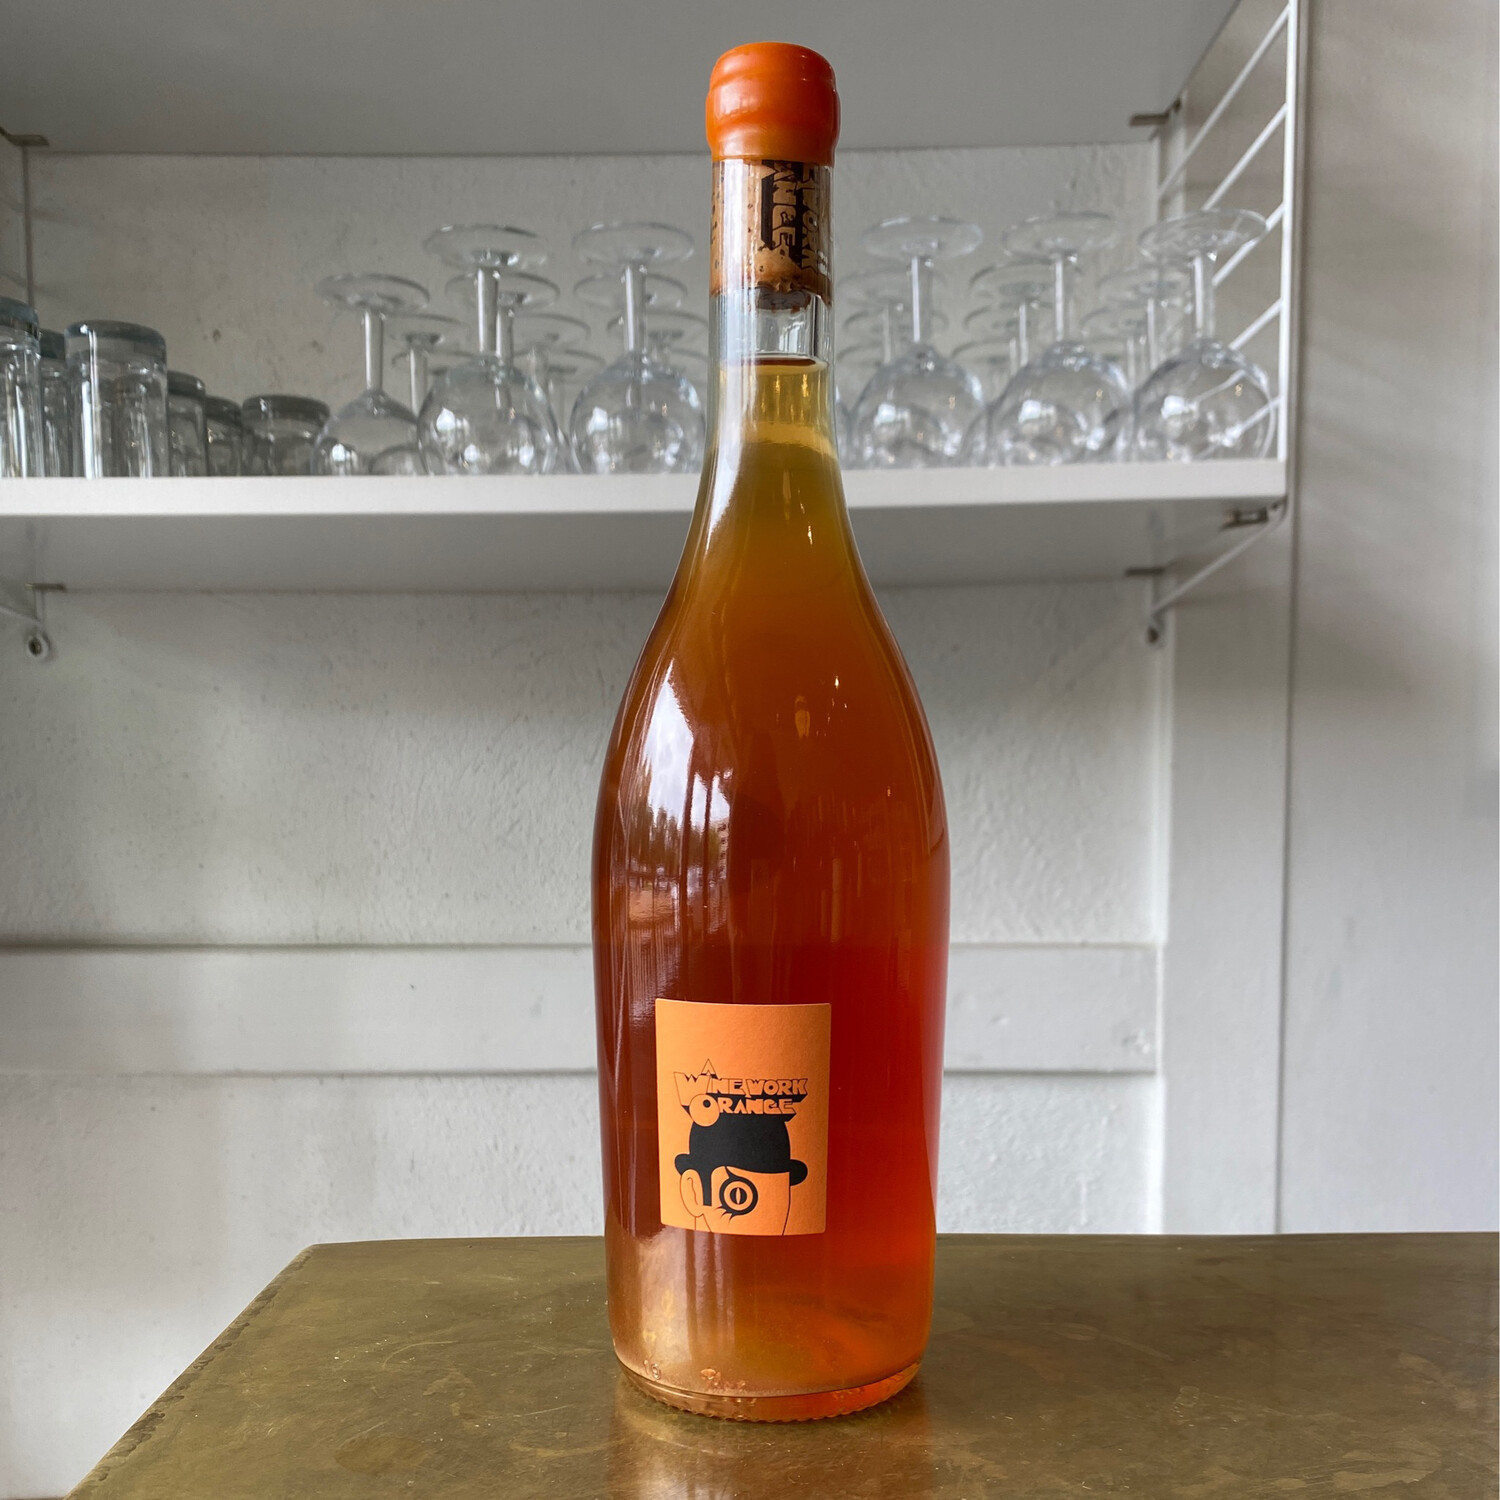 Sicus 'Wine Work Orange' (2018)